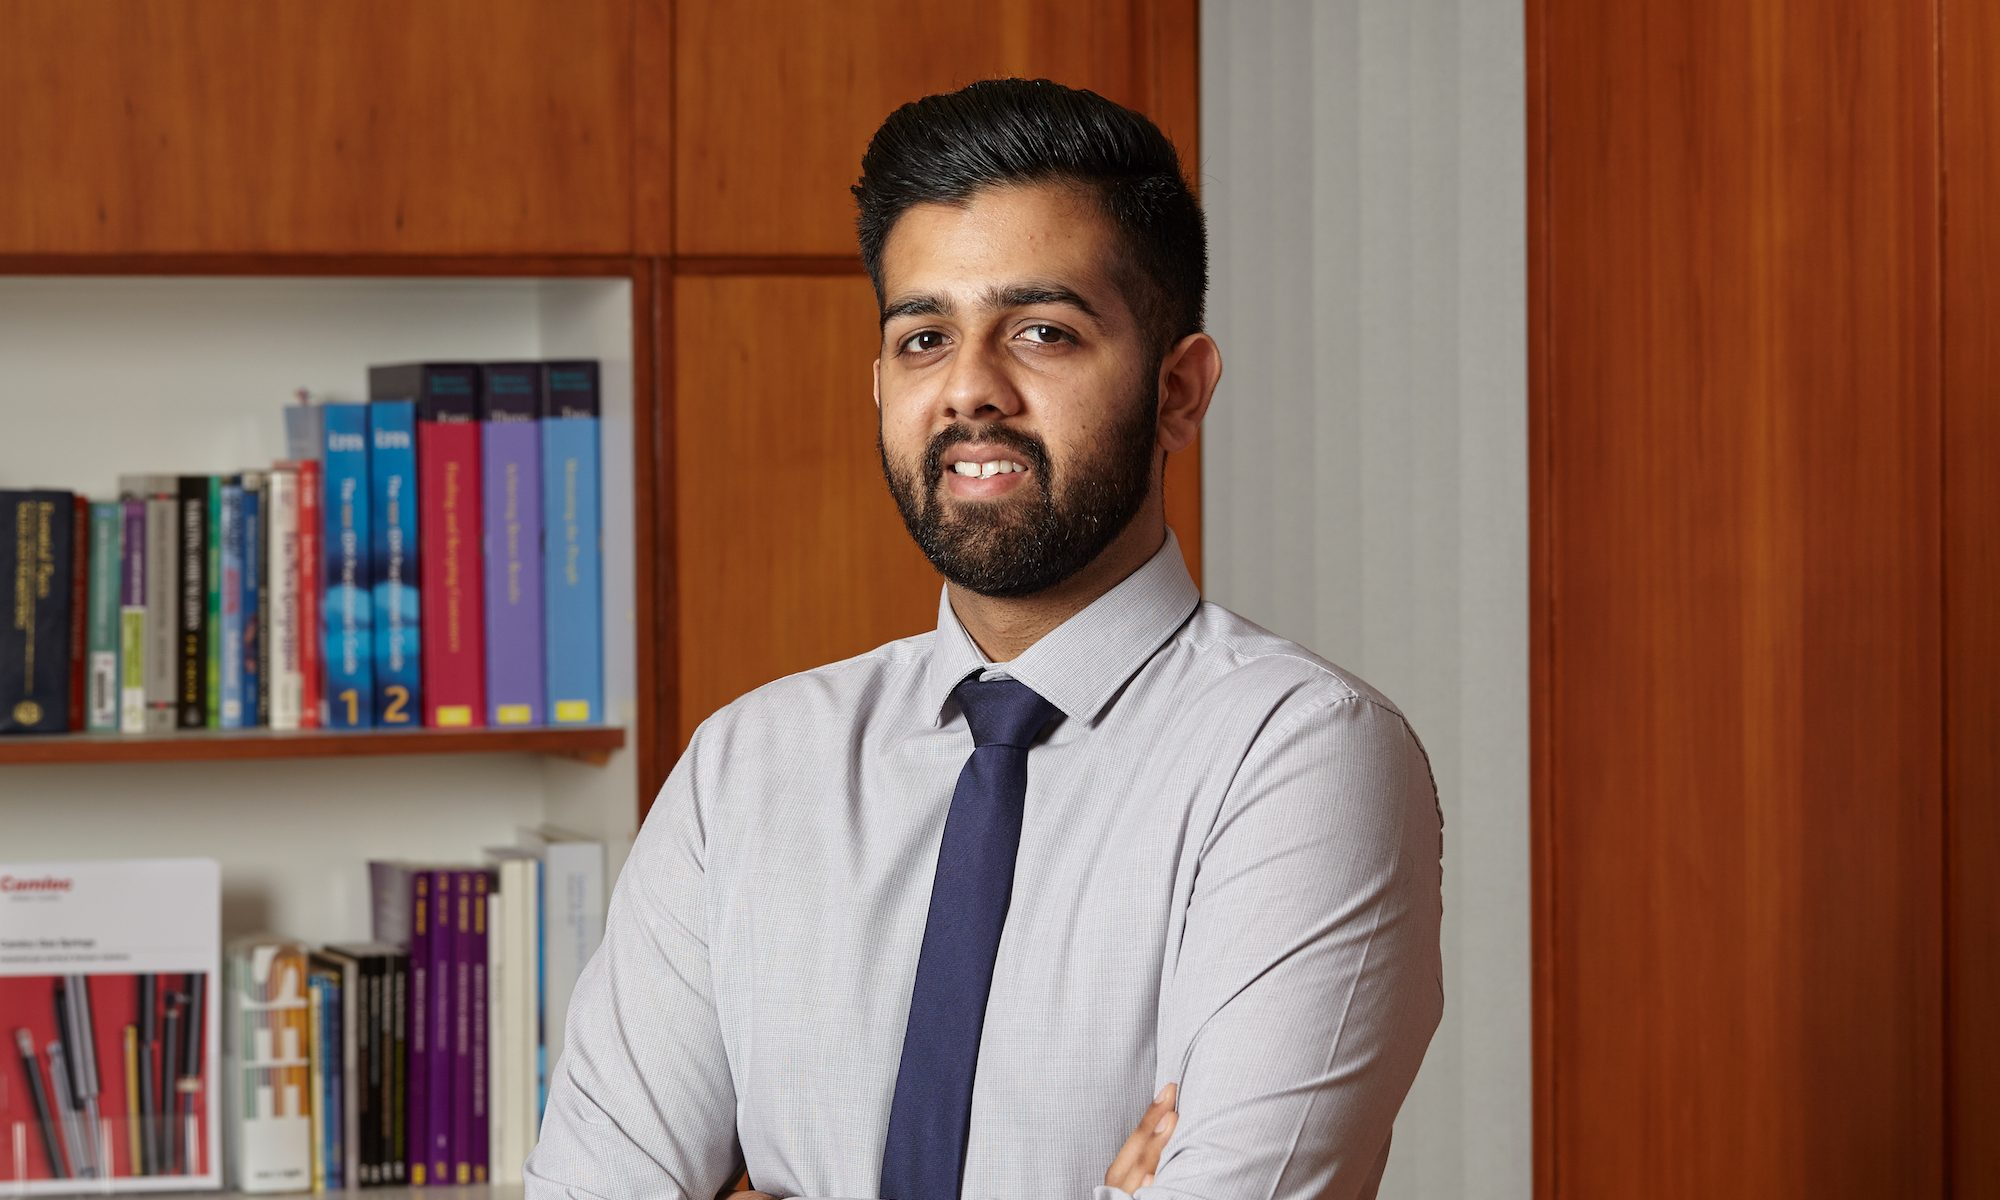 Gagan Chatha 058 2000x1200 - Investment in future talent continues with the appointment of graduate applications engineer, Gagan Chatha